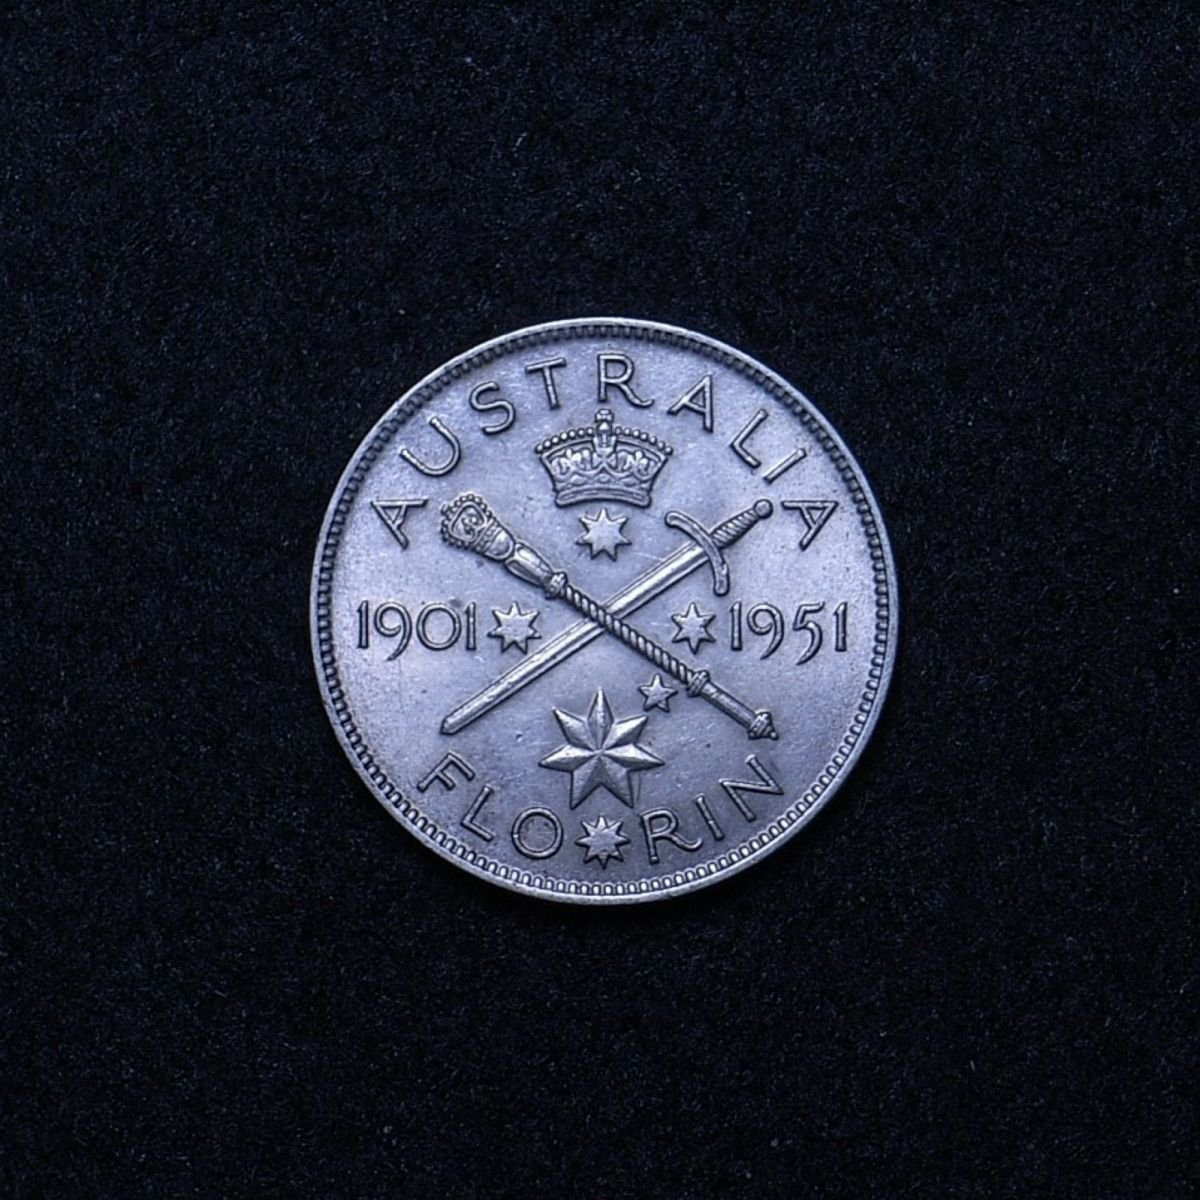 Aus Florin 1951 commemorative reverse showing overall appearance